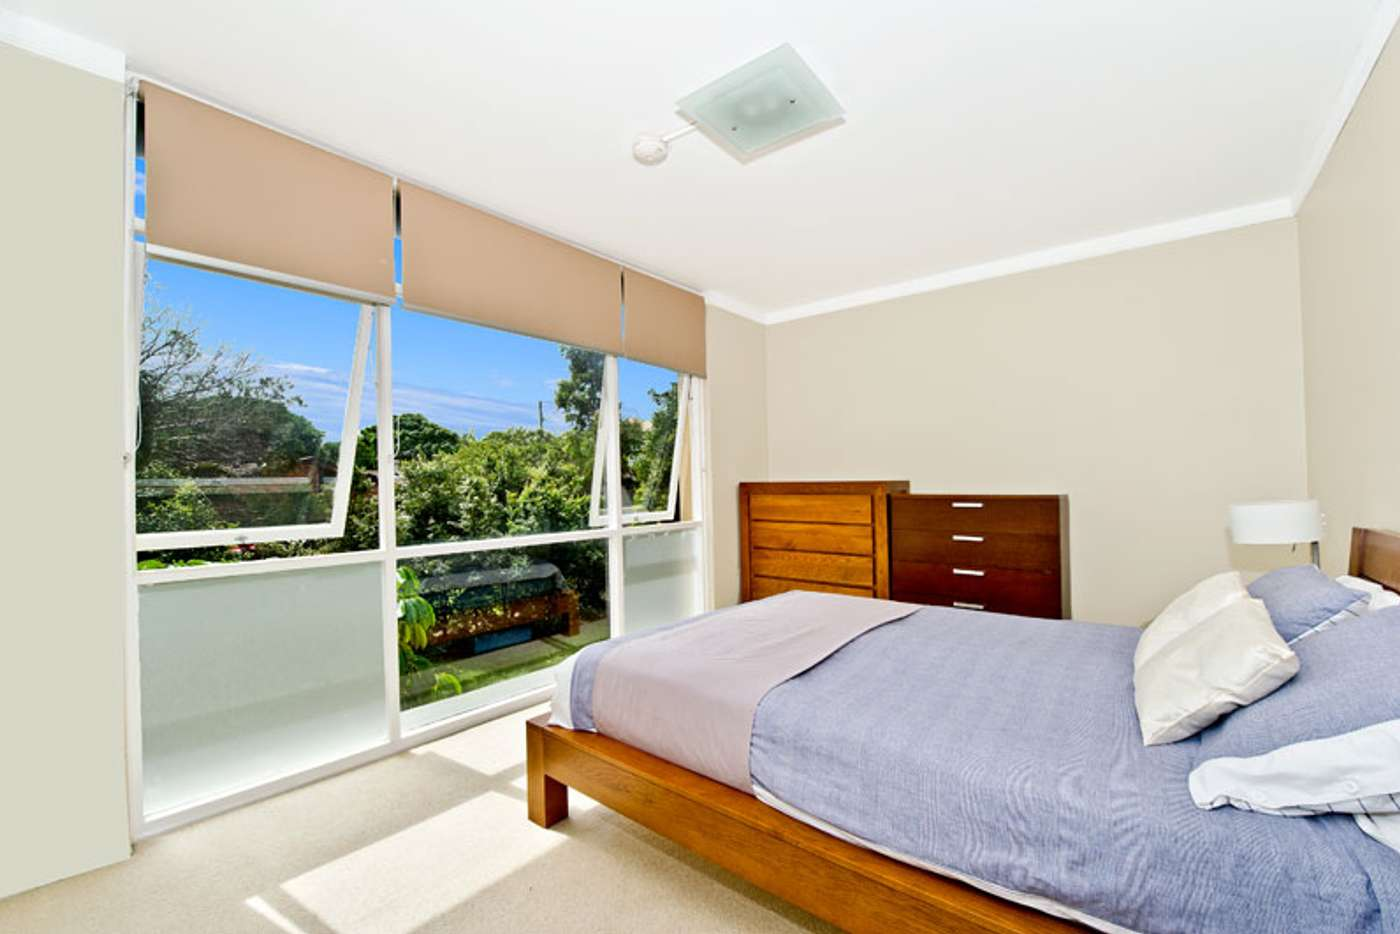 Main view of Homely apartment listing, 8/65 Wentworth Street, Randwick NSW 2031